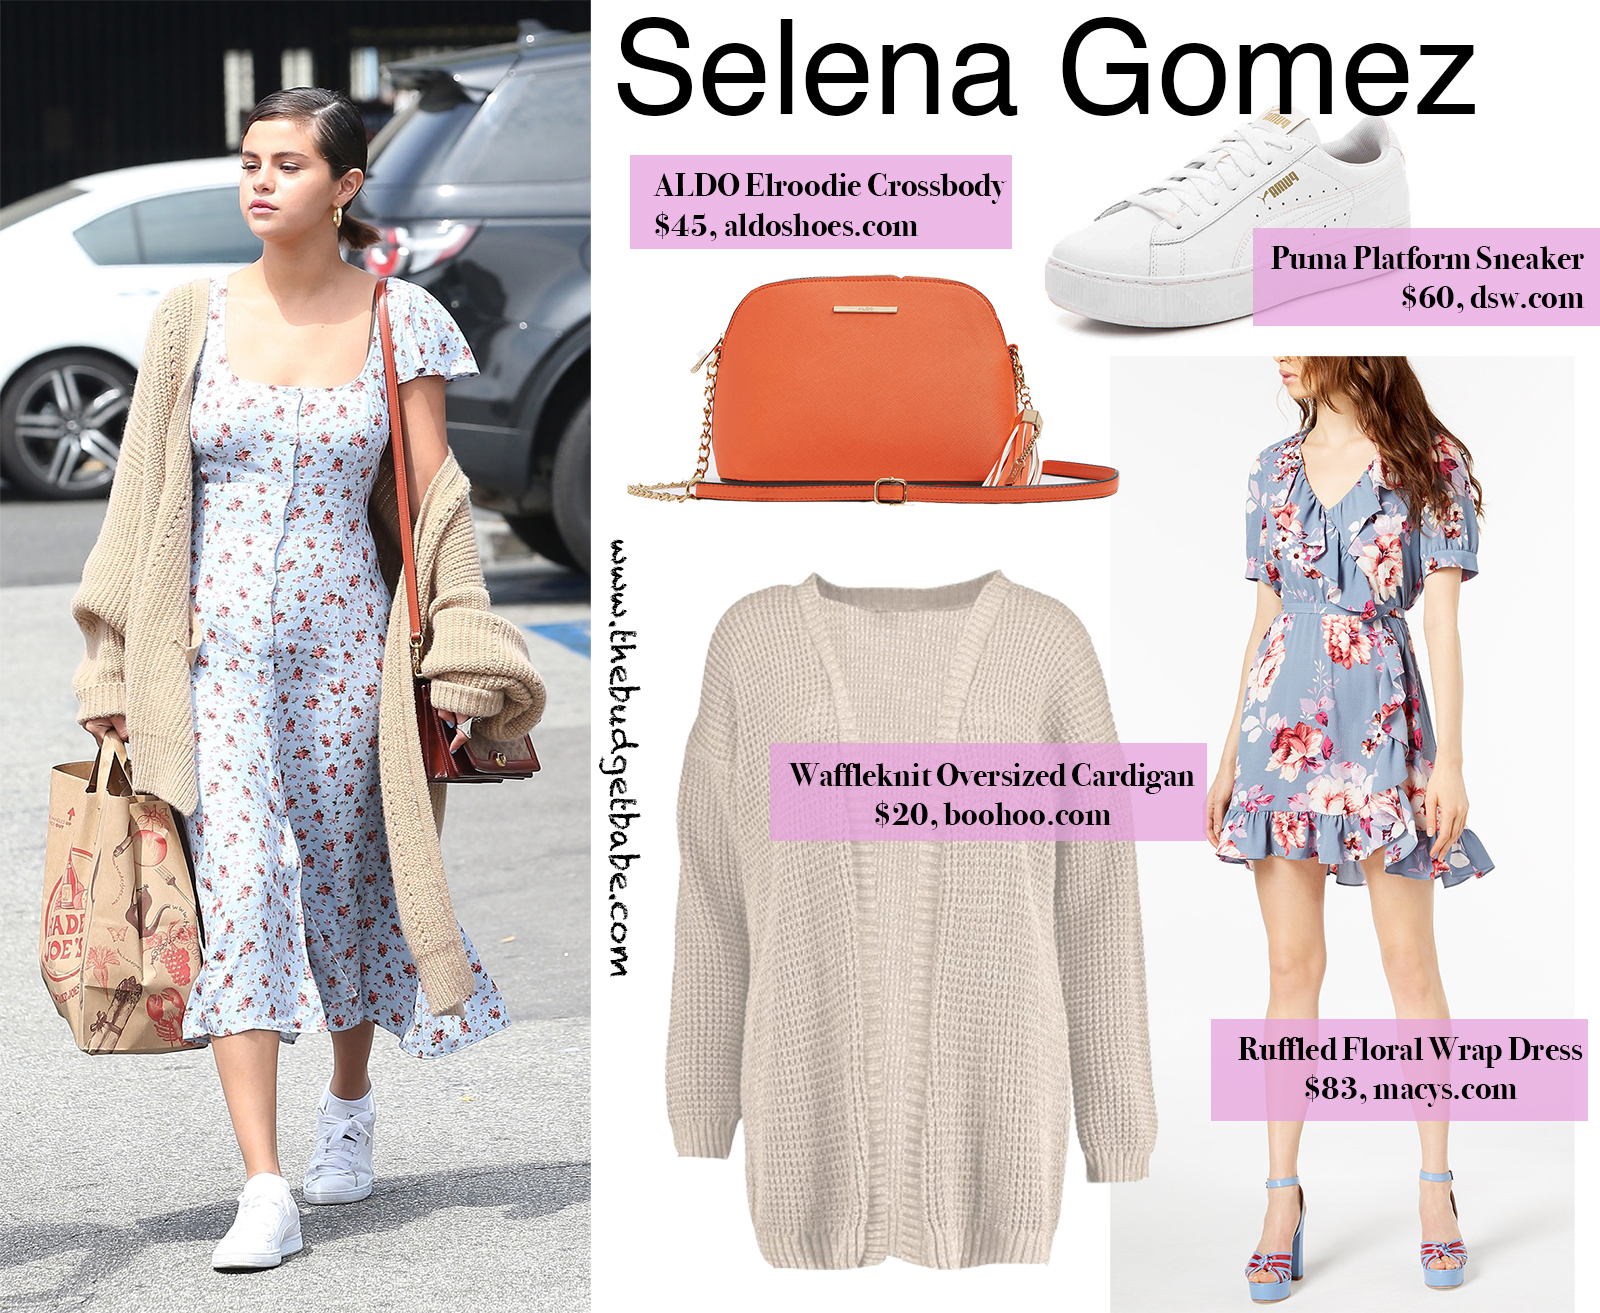 d0965b9224ab6 Selena Gomez's Floral Dress and Oversized Cardigan Look For Less ...